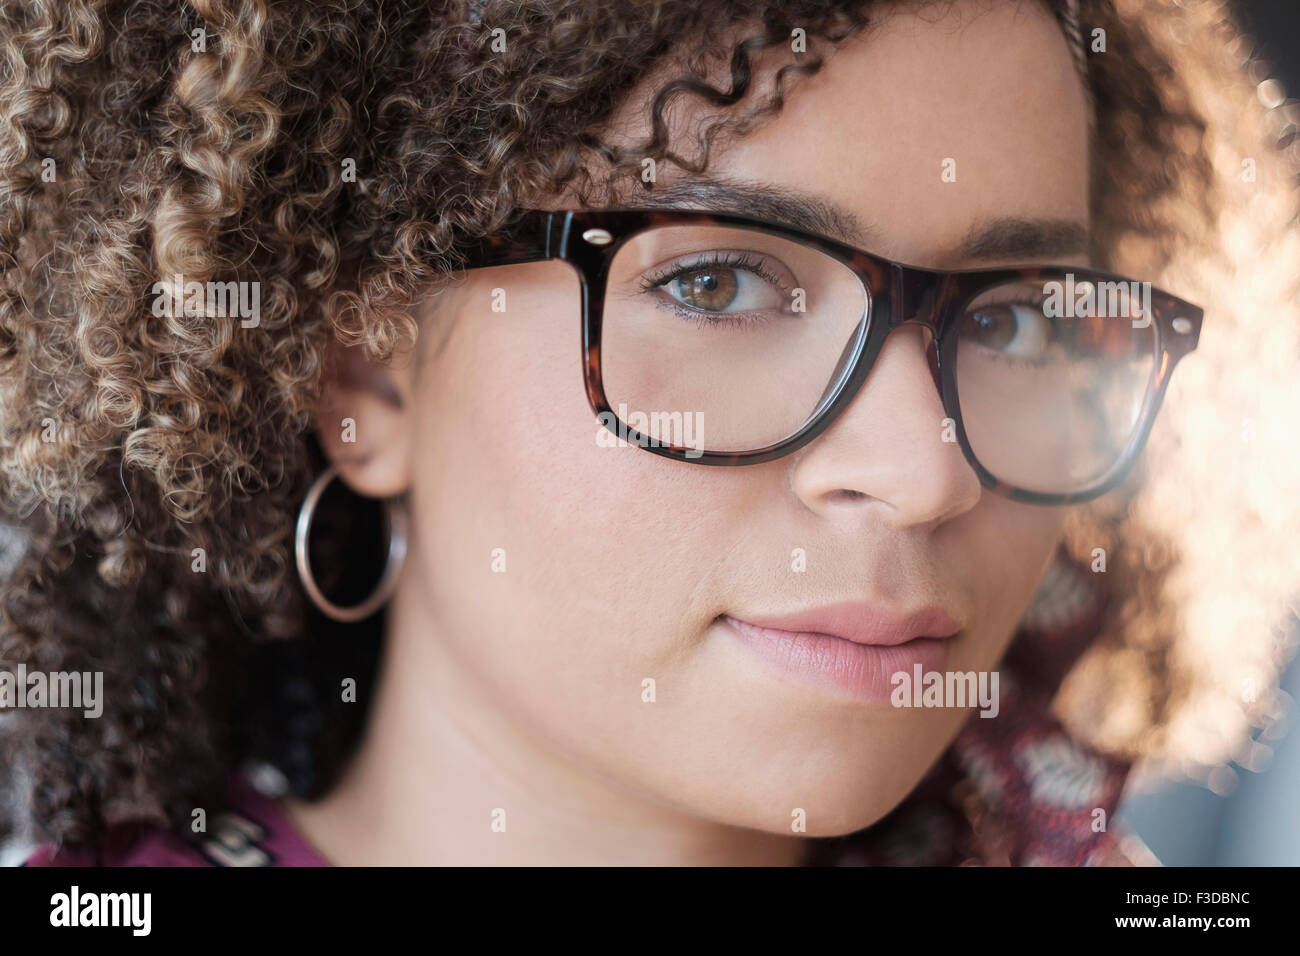 Portrait of woman with curly hair - Stock Image